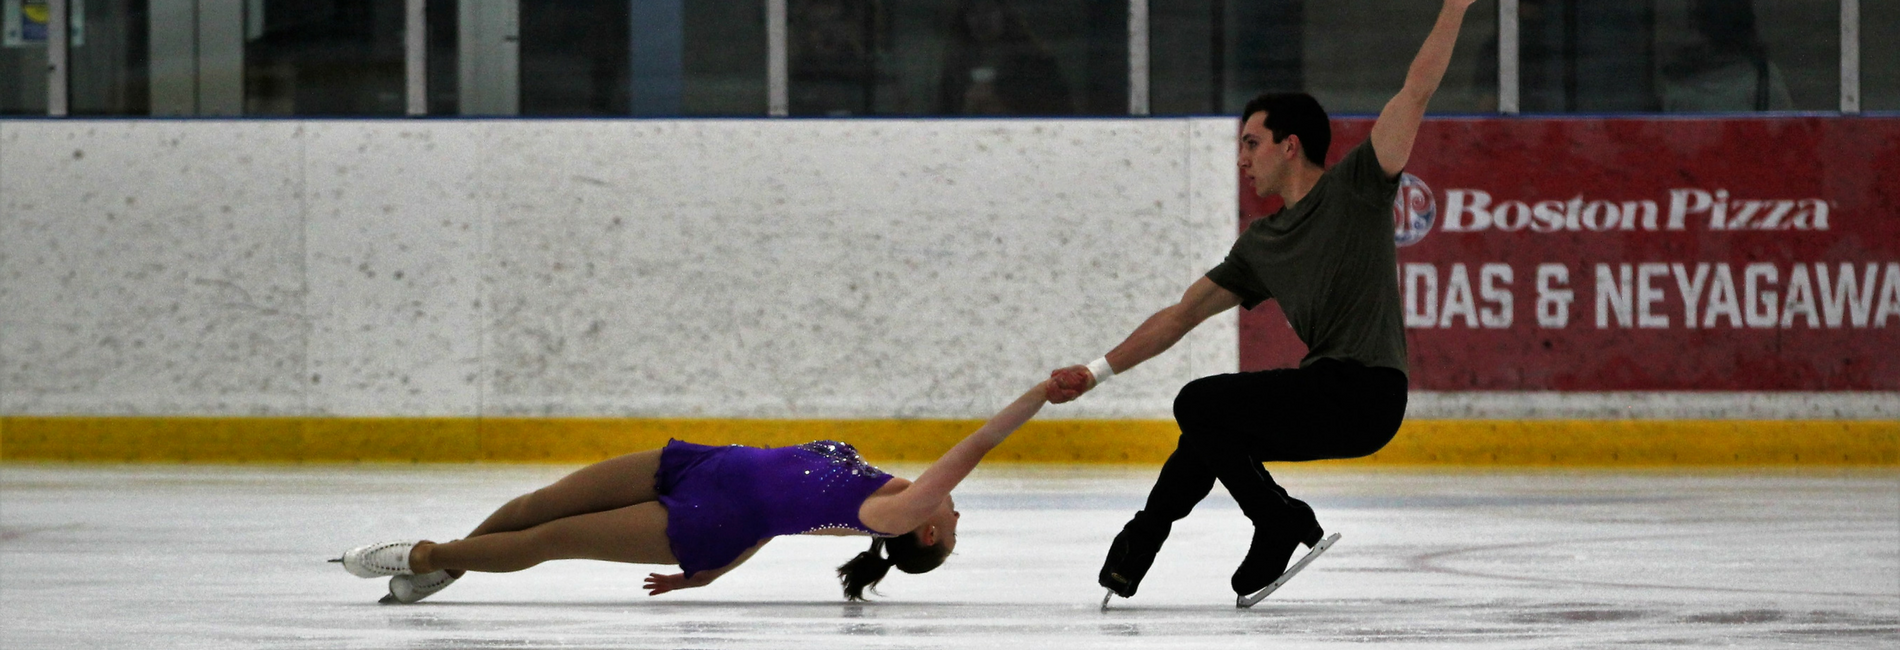 Standard swscd   figure skating  1   activity banner image    1900x650